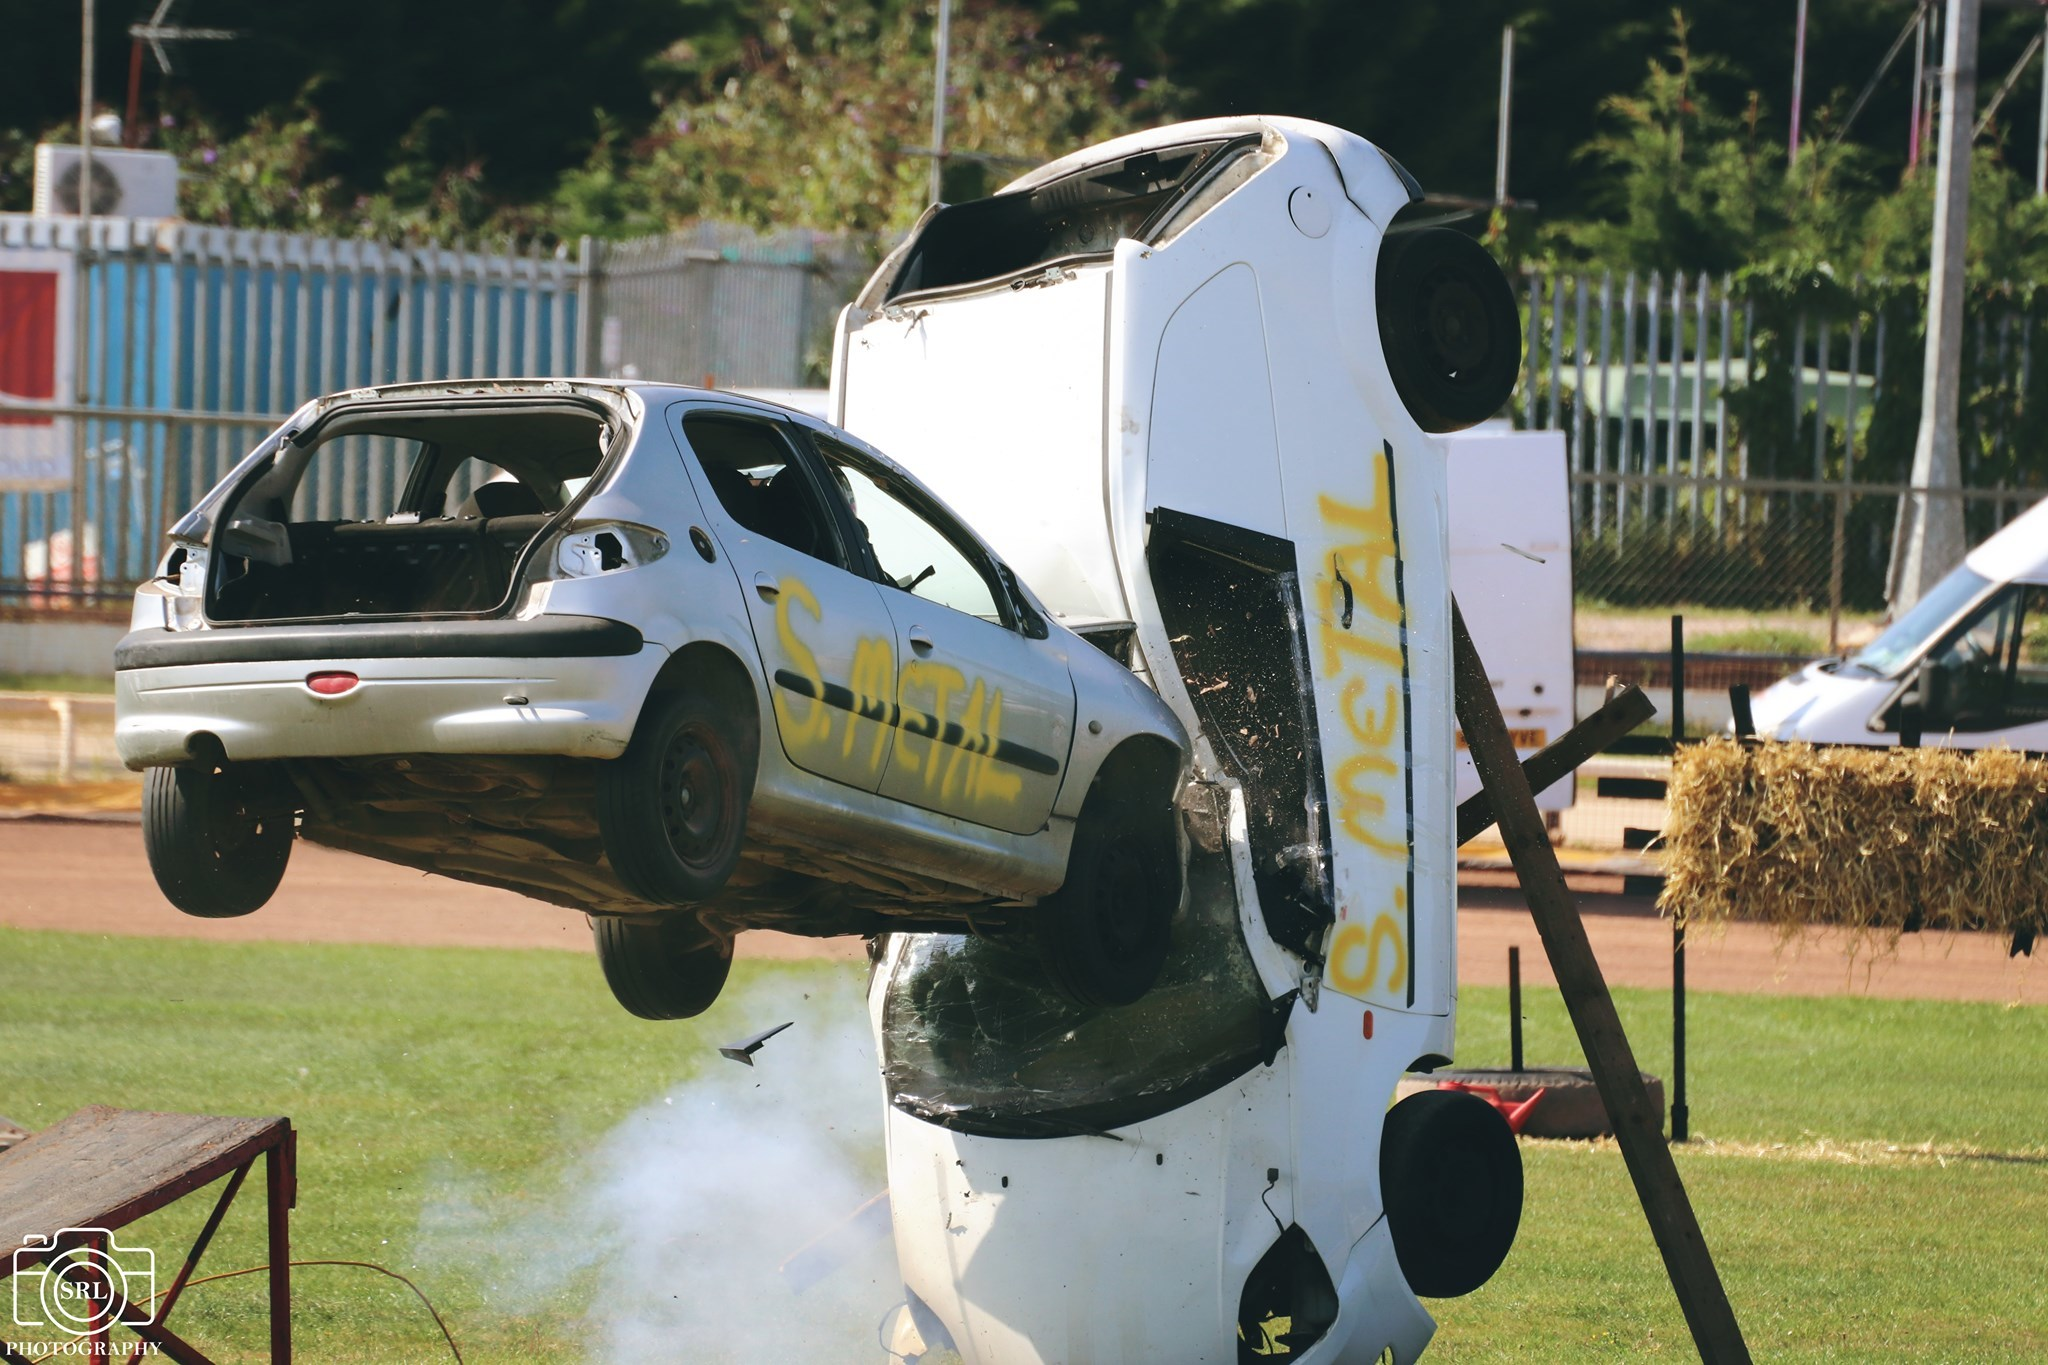 Daredevil dazzles the crowds with stunt show at Poole Stadium